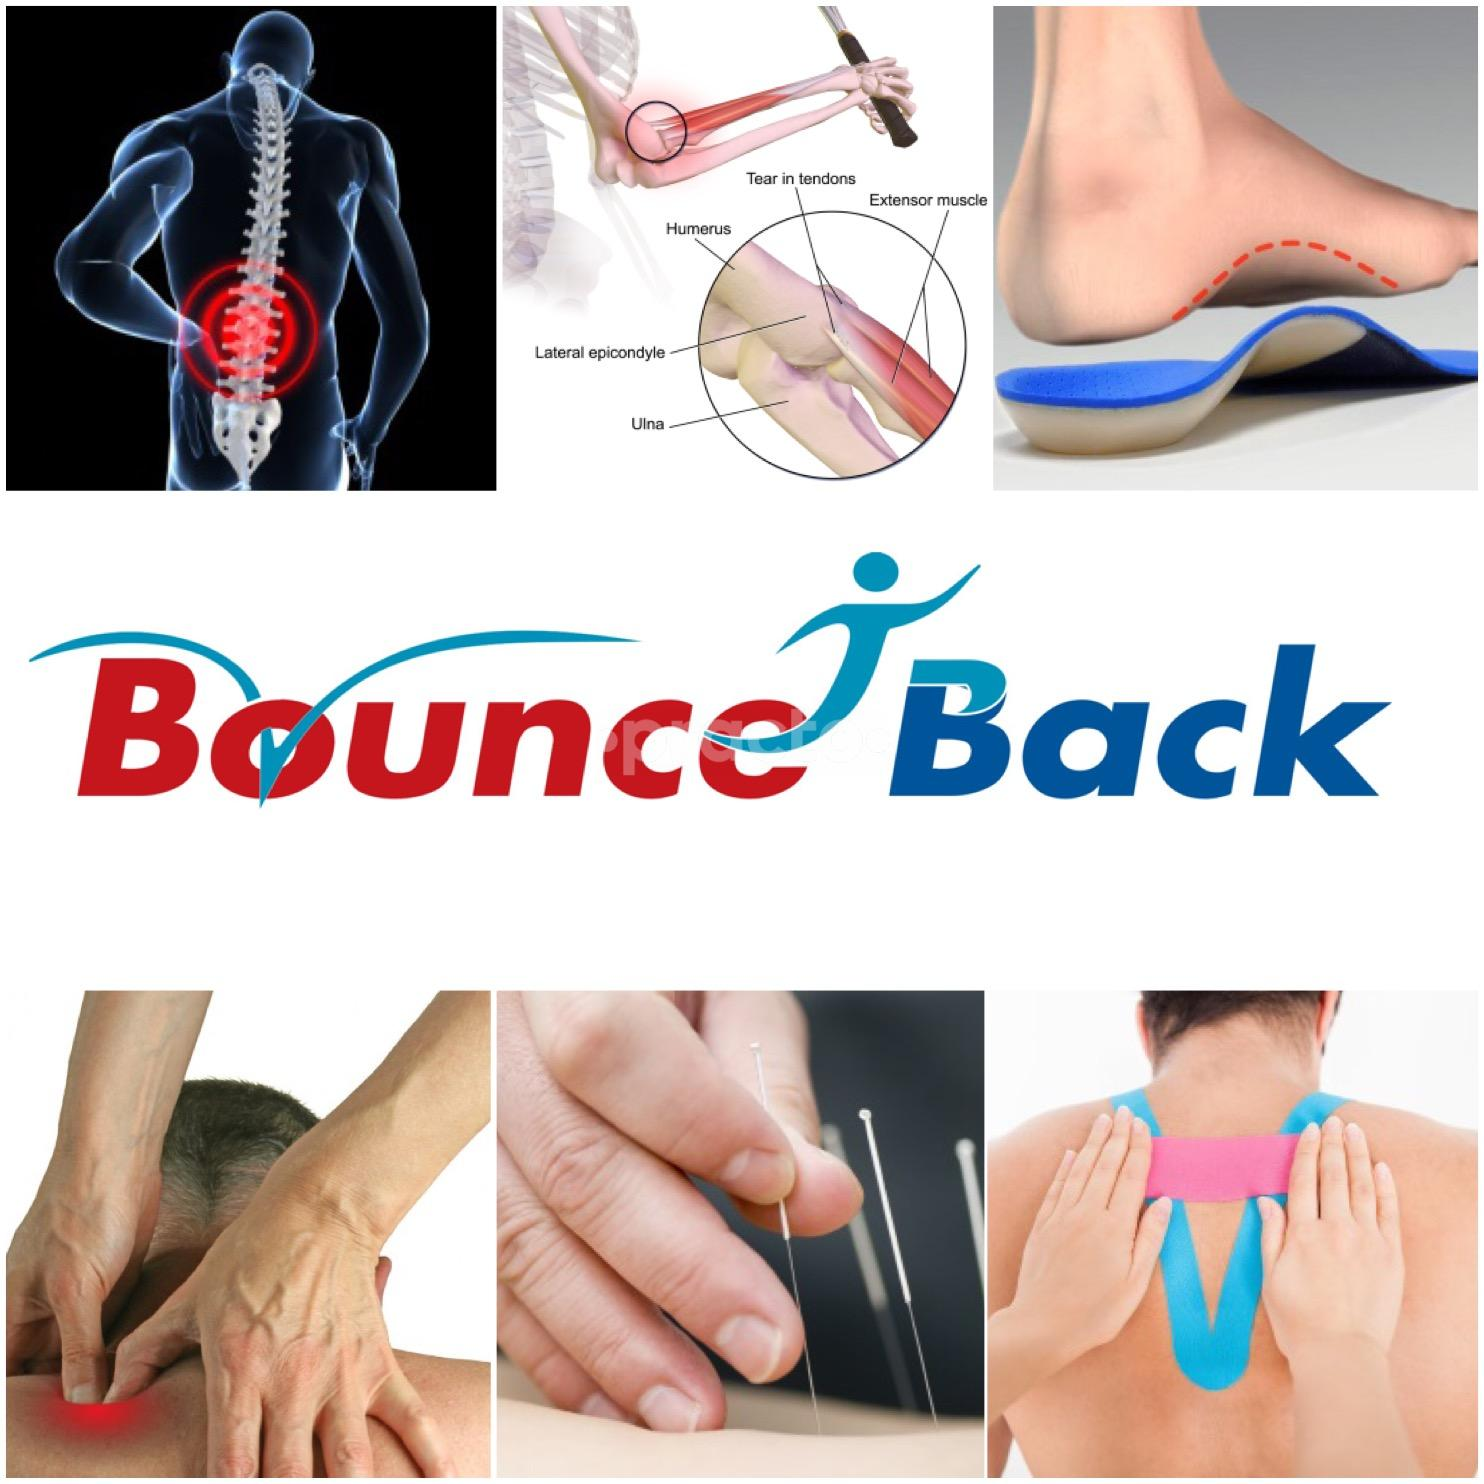 Bounce Back Sports And Orthopaedic Rehabilitation And Prevention Centre